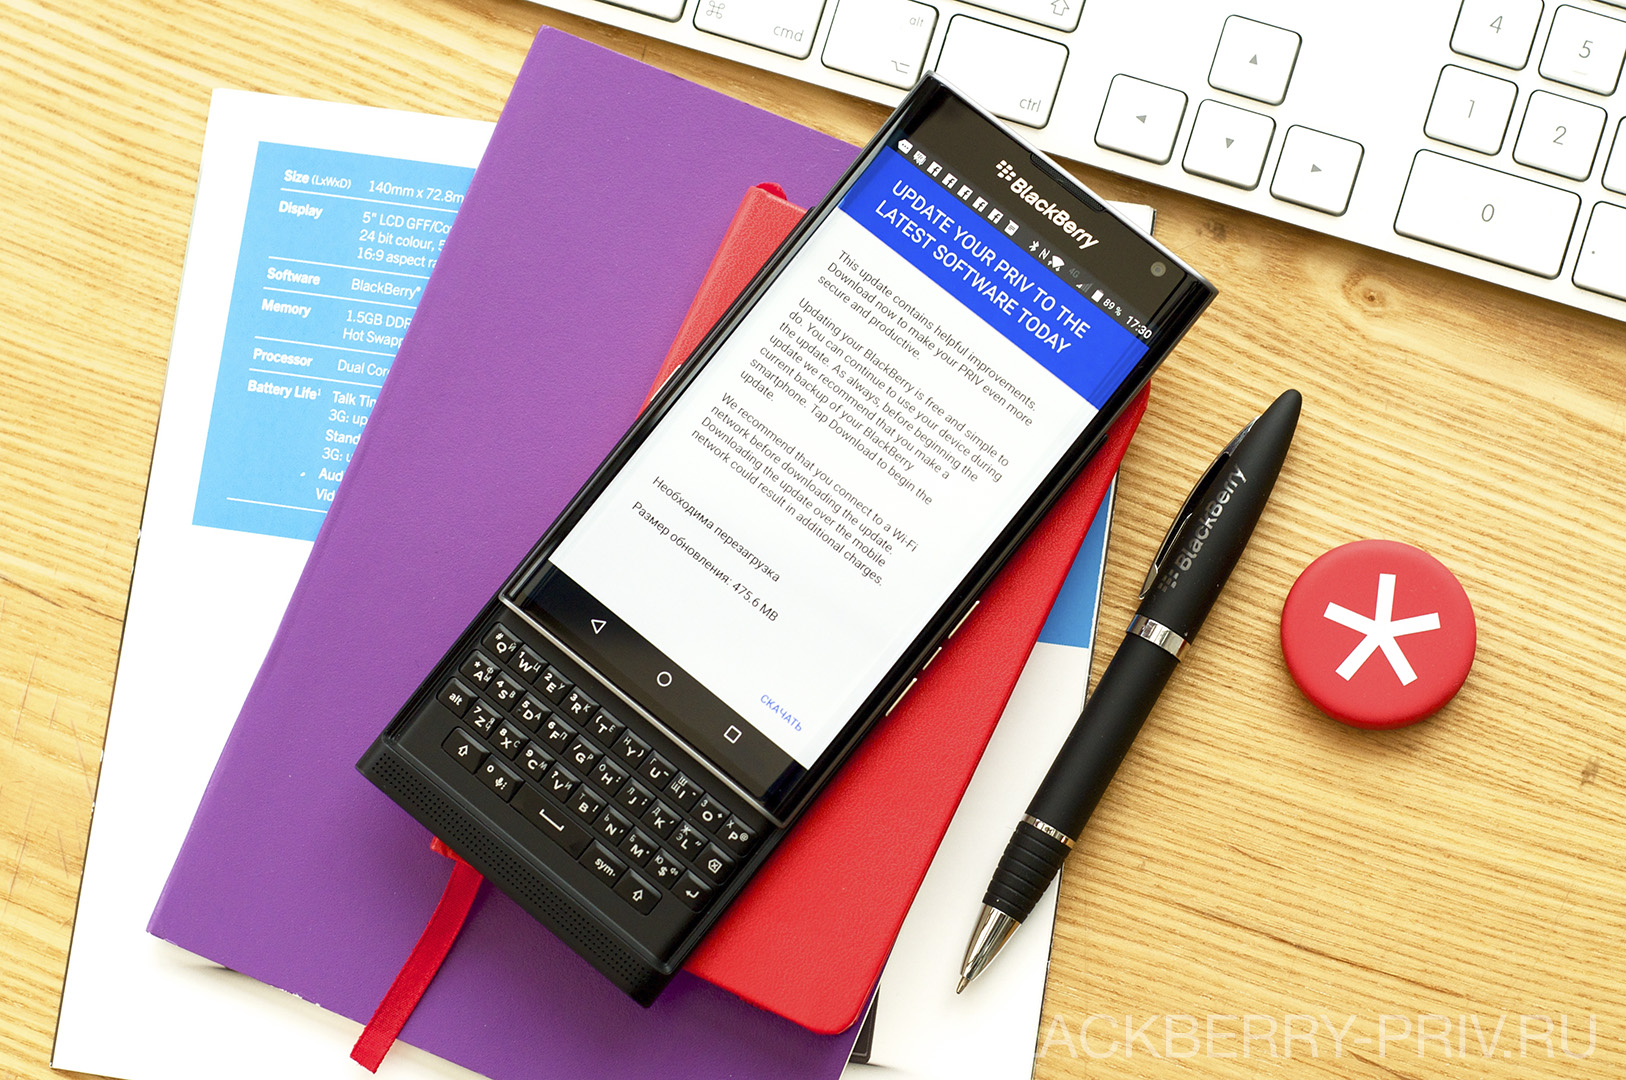 BlackBerry-Priv-Update